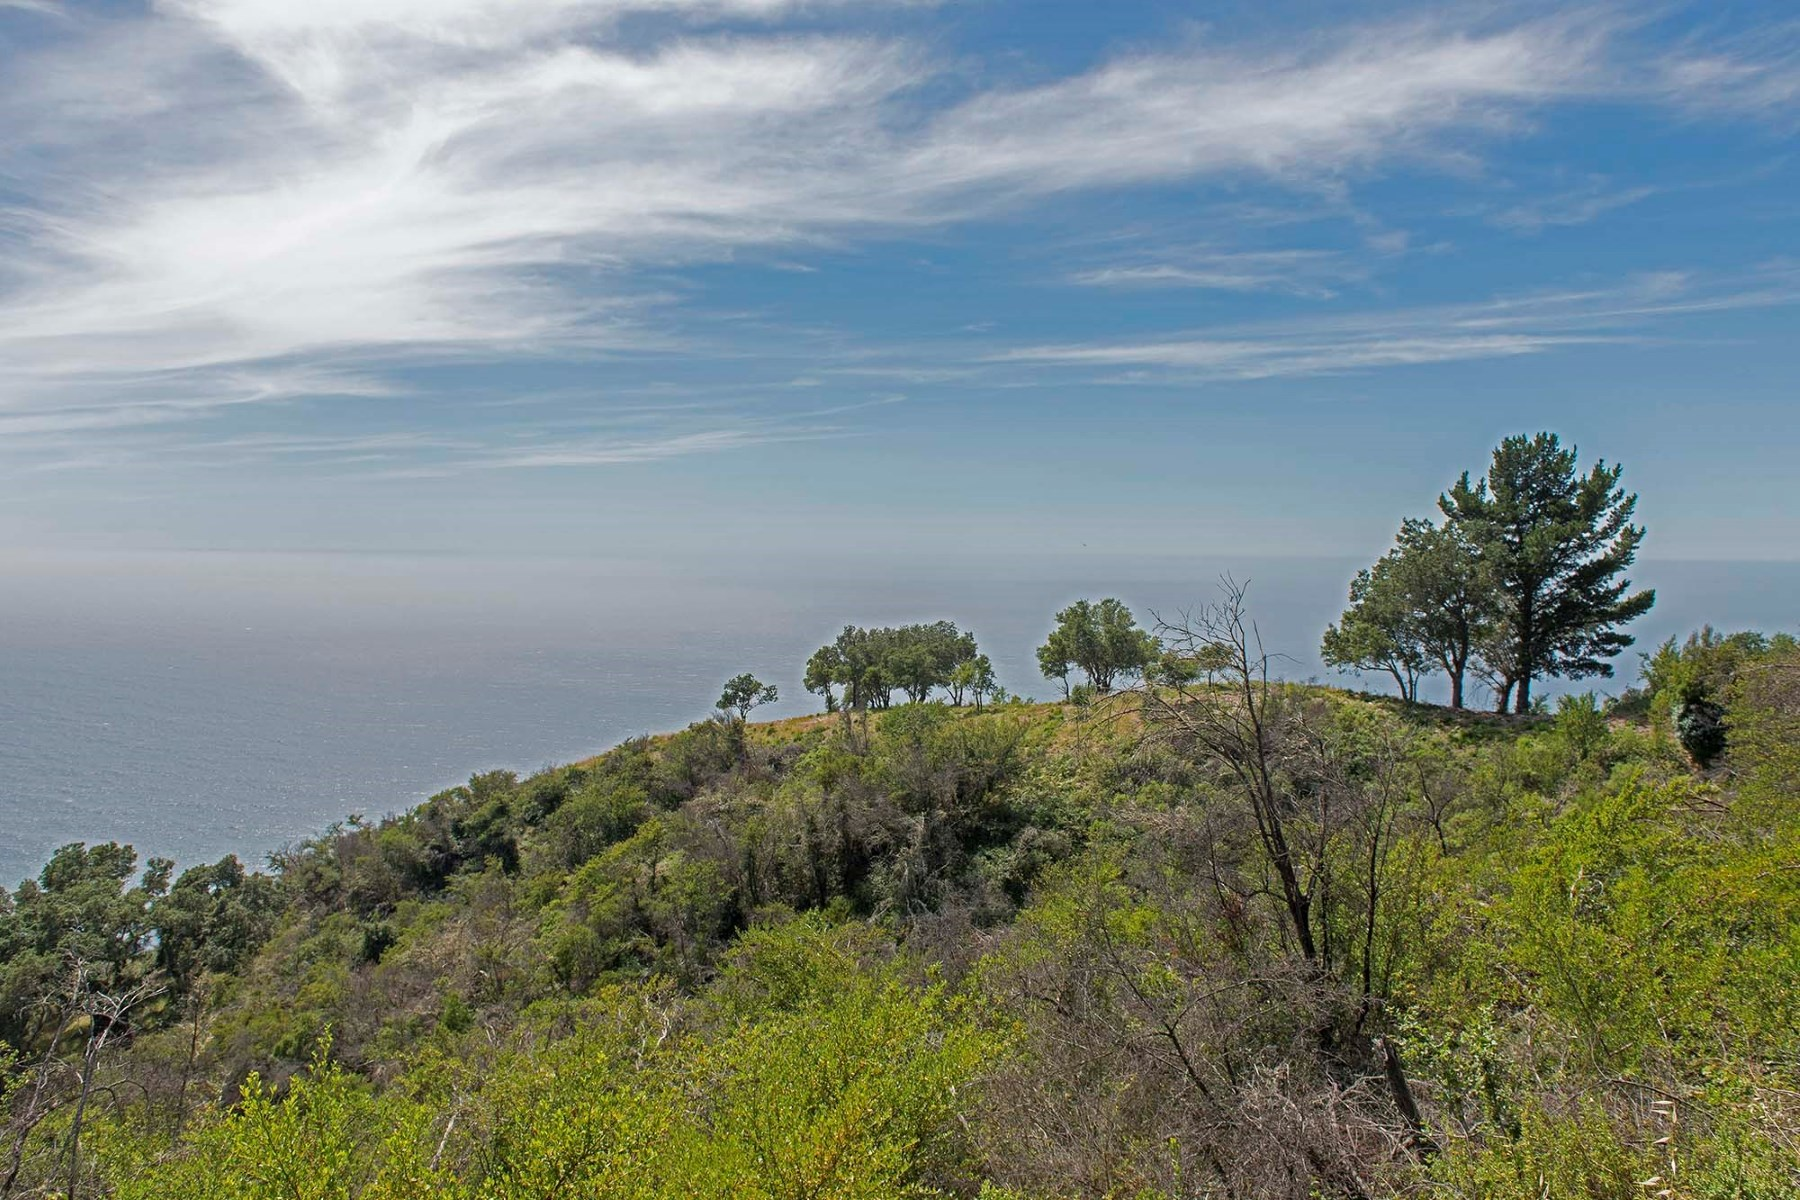 Terrain pour l Vente à Panoramic Ocean and Mountain Views Highway 1 At Santa Lucia Ranch Big Sur, Californie 93920 États-Unis